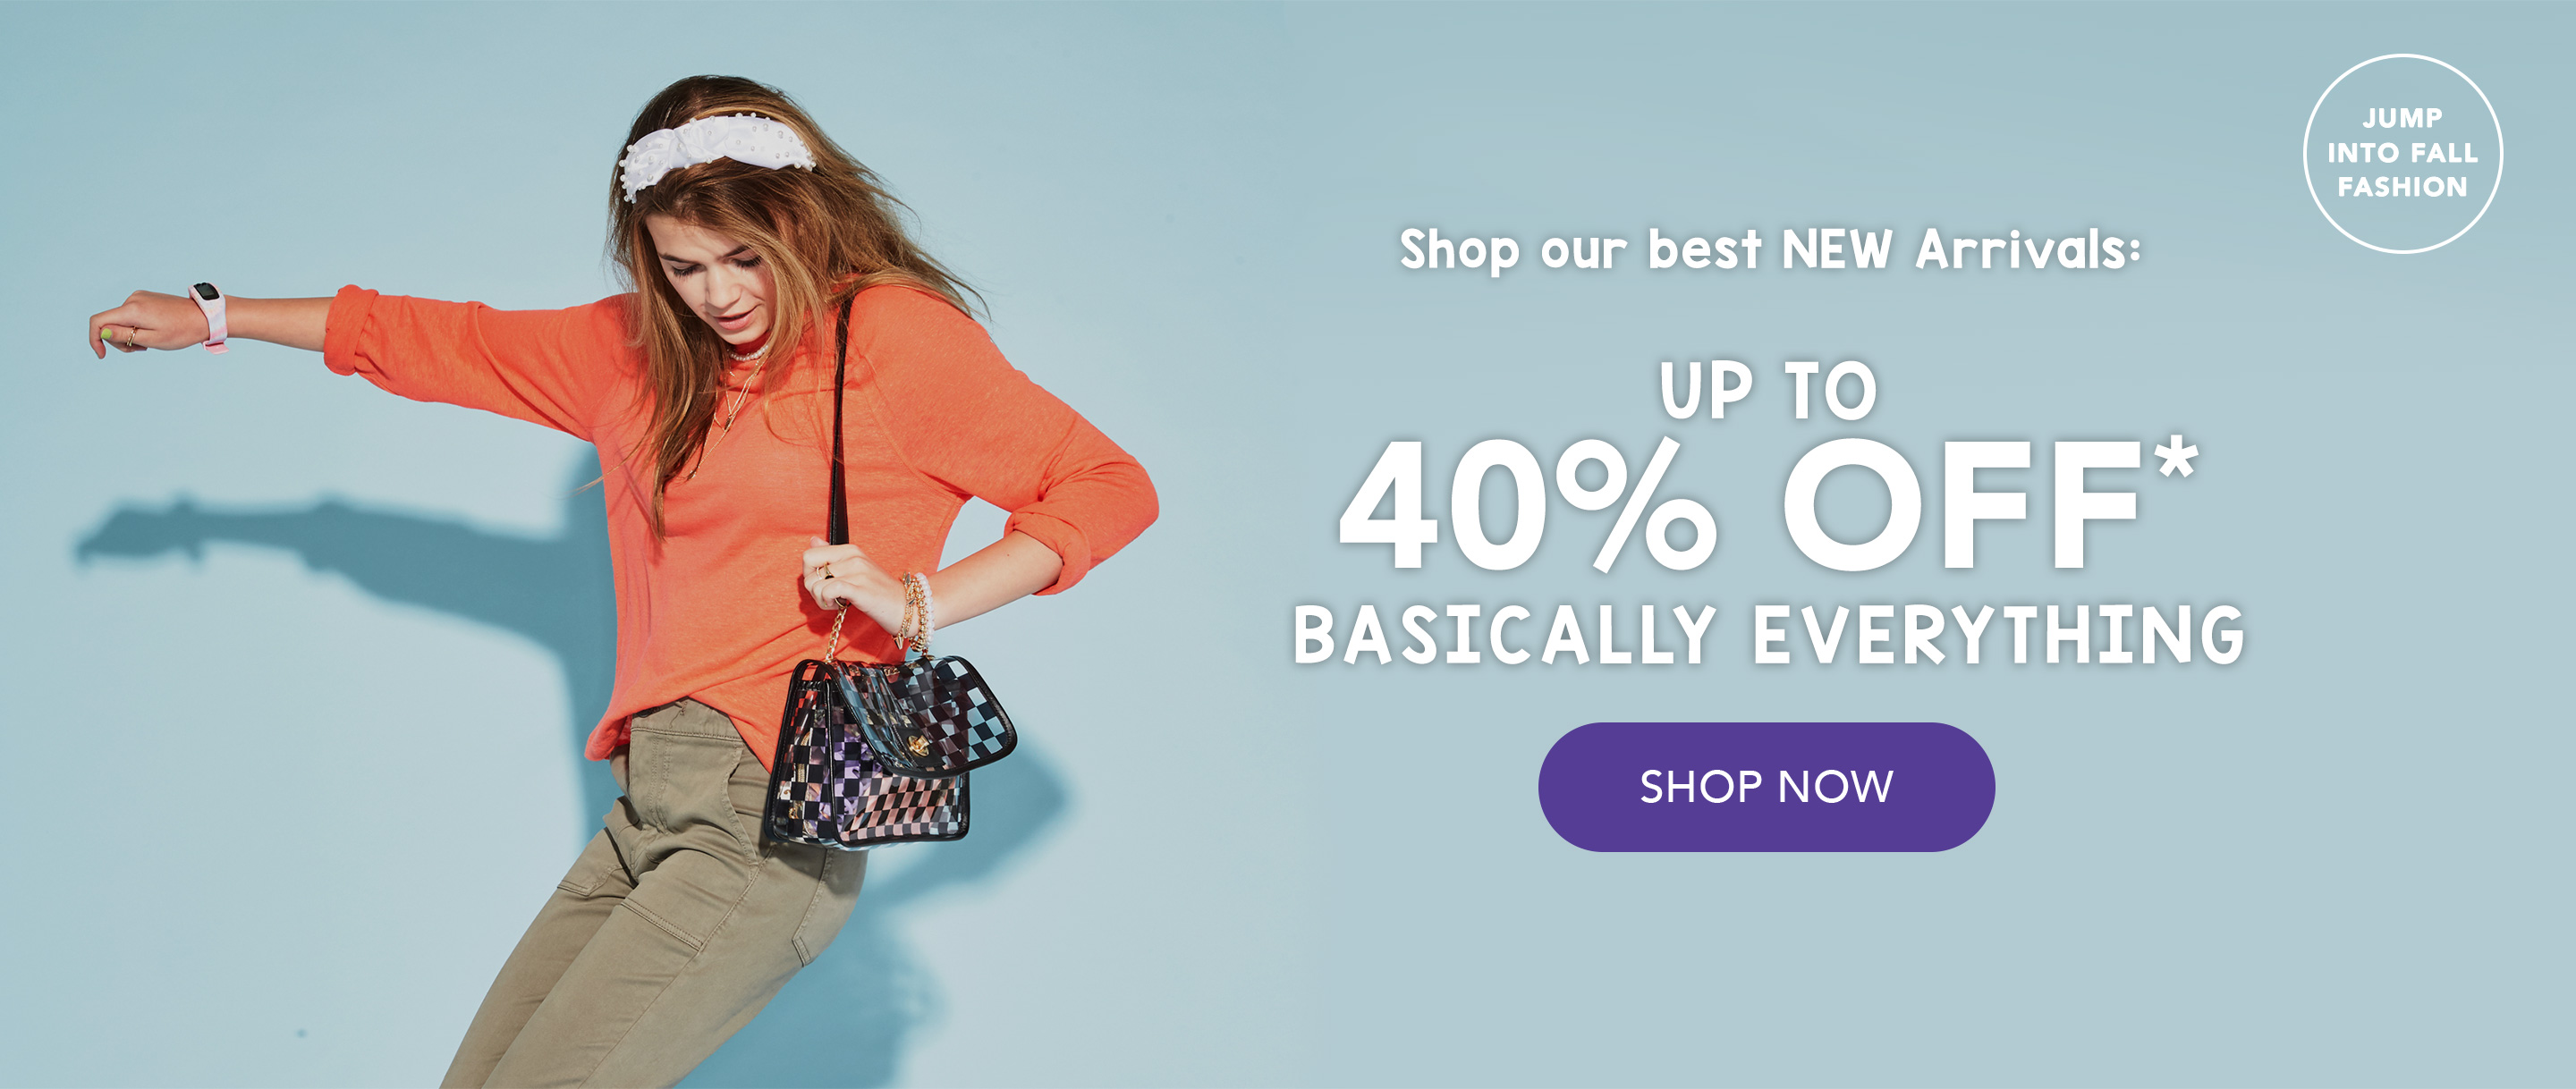 Get ready for fall! Shop our best NEW arrivals: up to 40% OFF basically everything.